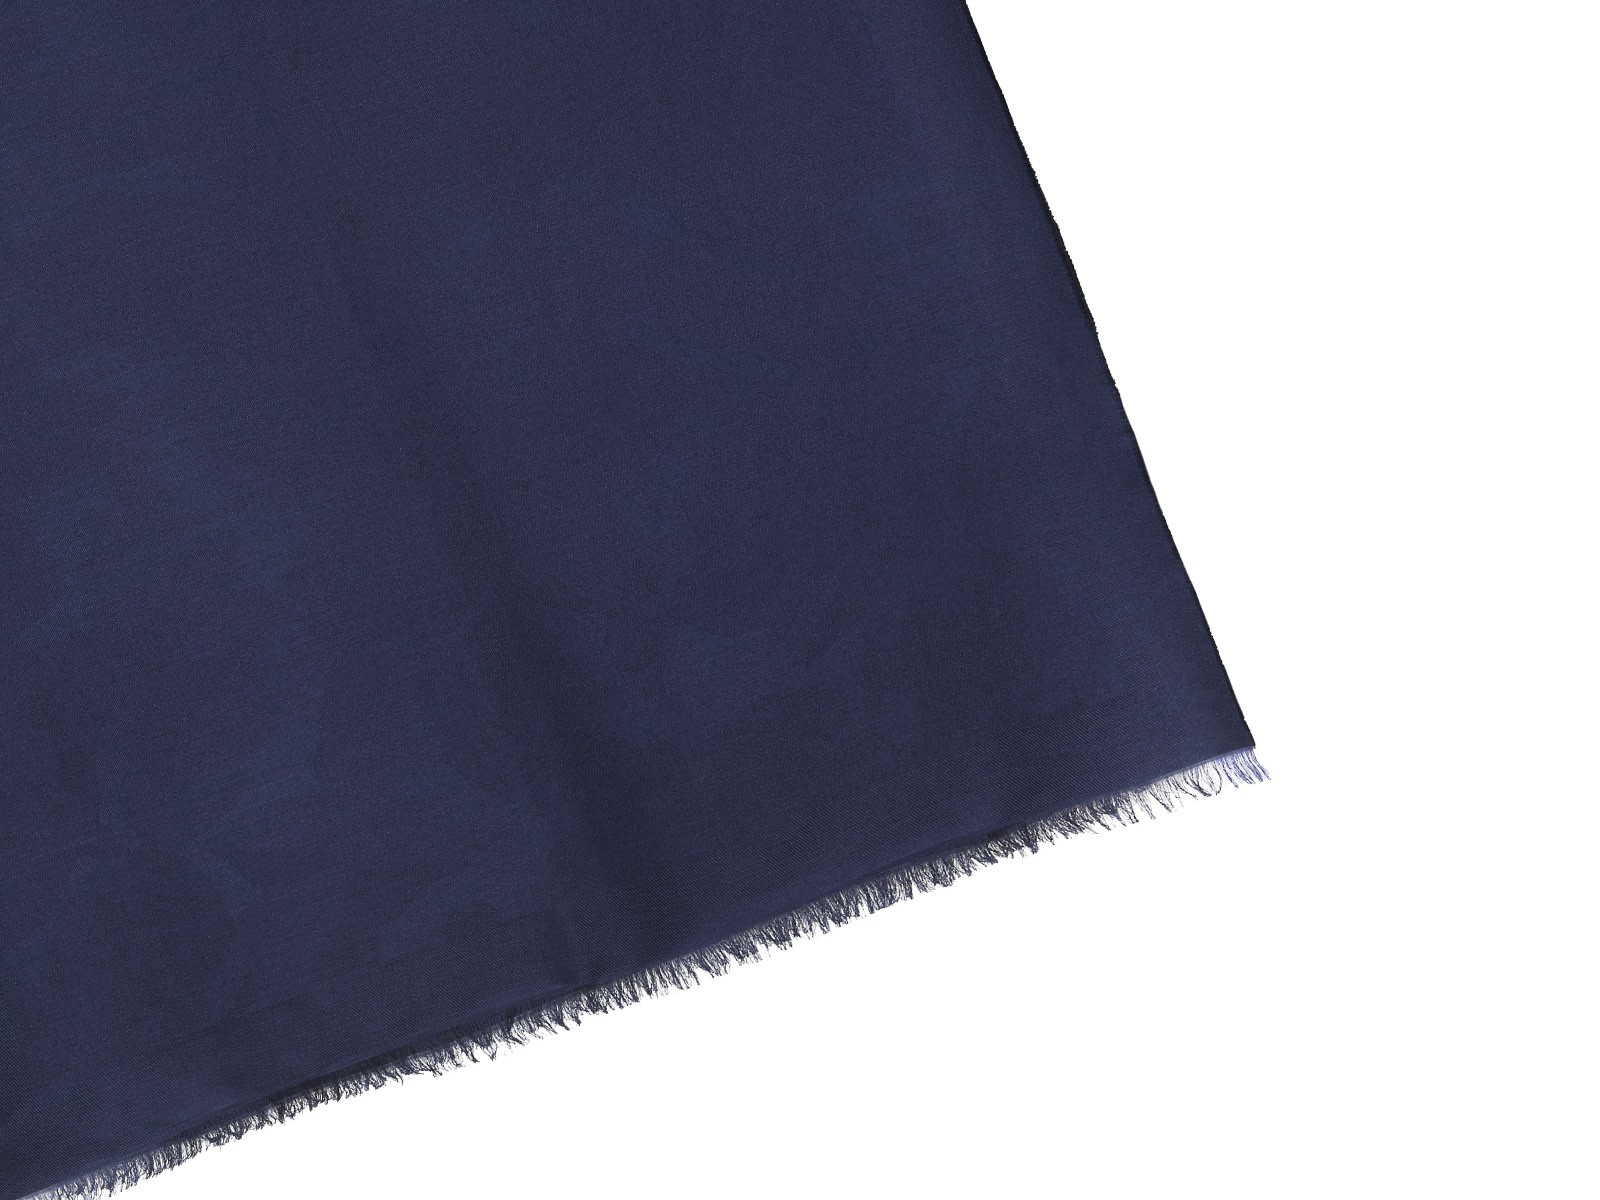 Salvatore Ferragamo Double-sided Floral And Monocolor Stole In Black Blue